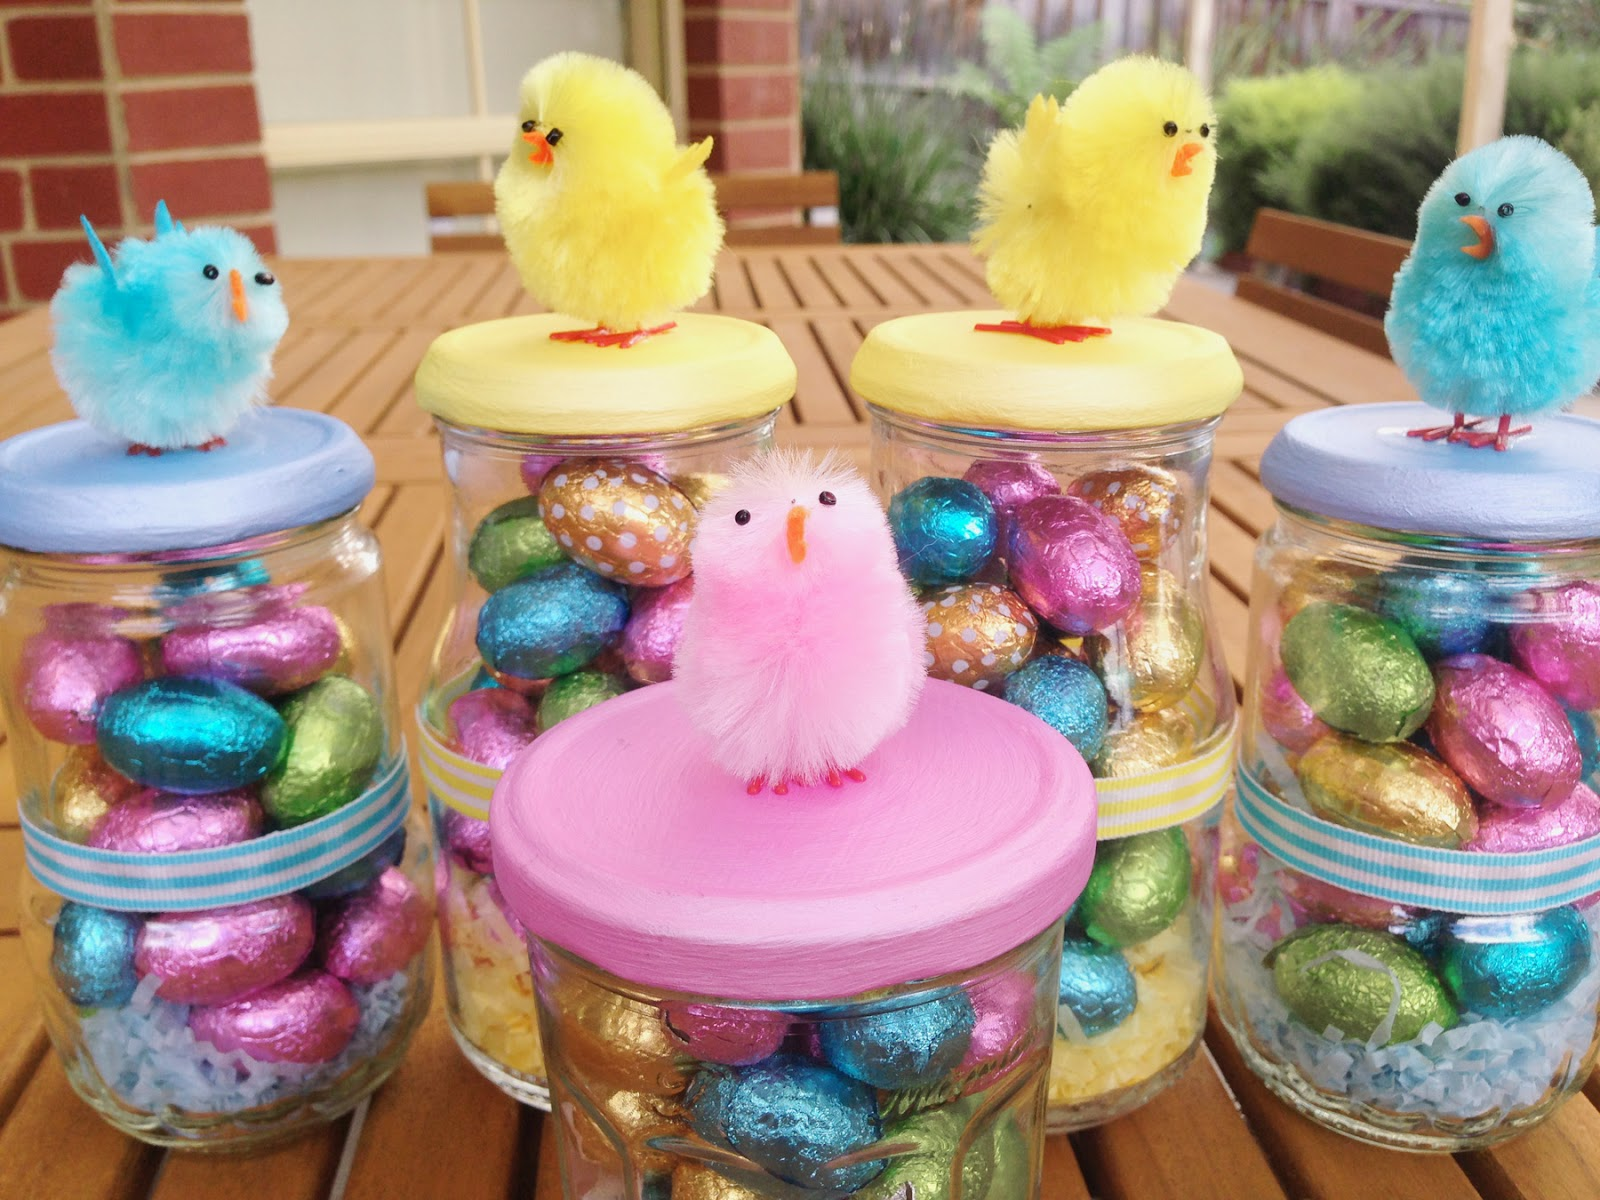 Cookie crumbles cute easter gifts i got the idea for these cute little jars from this post on pinterest i think they are perfect for gifts at easter time and fairly easy too negle Choice Image